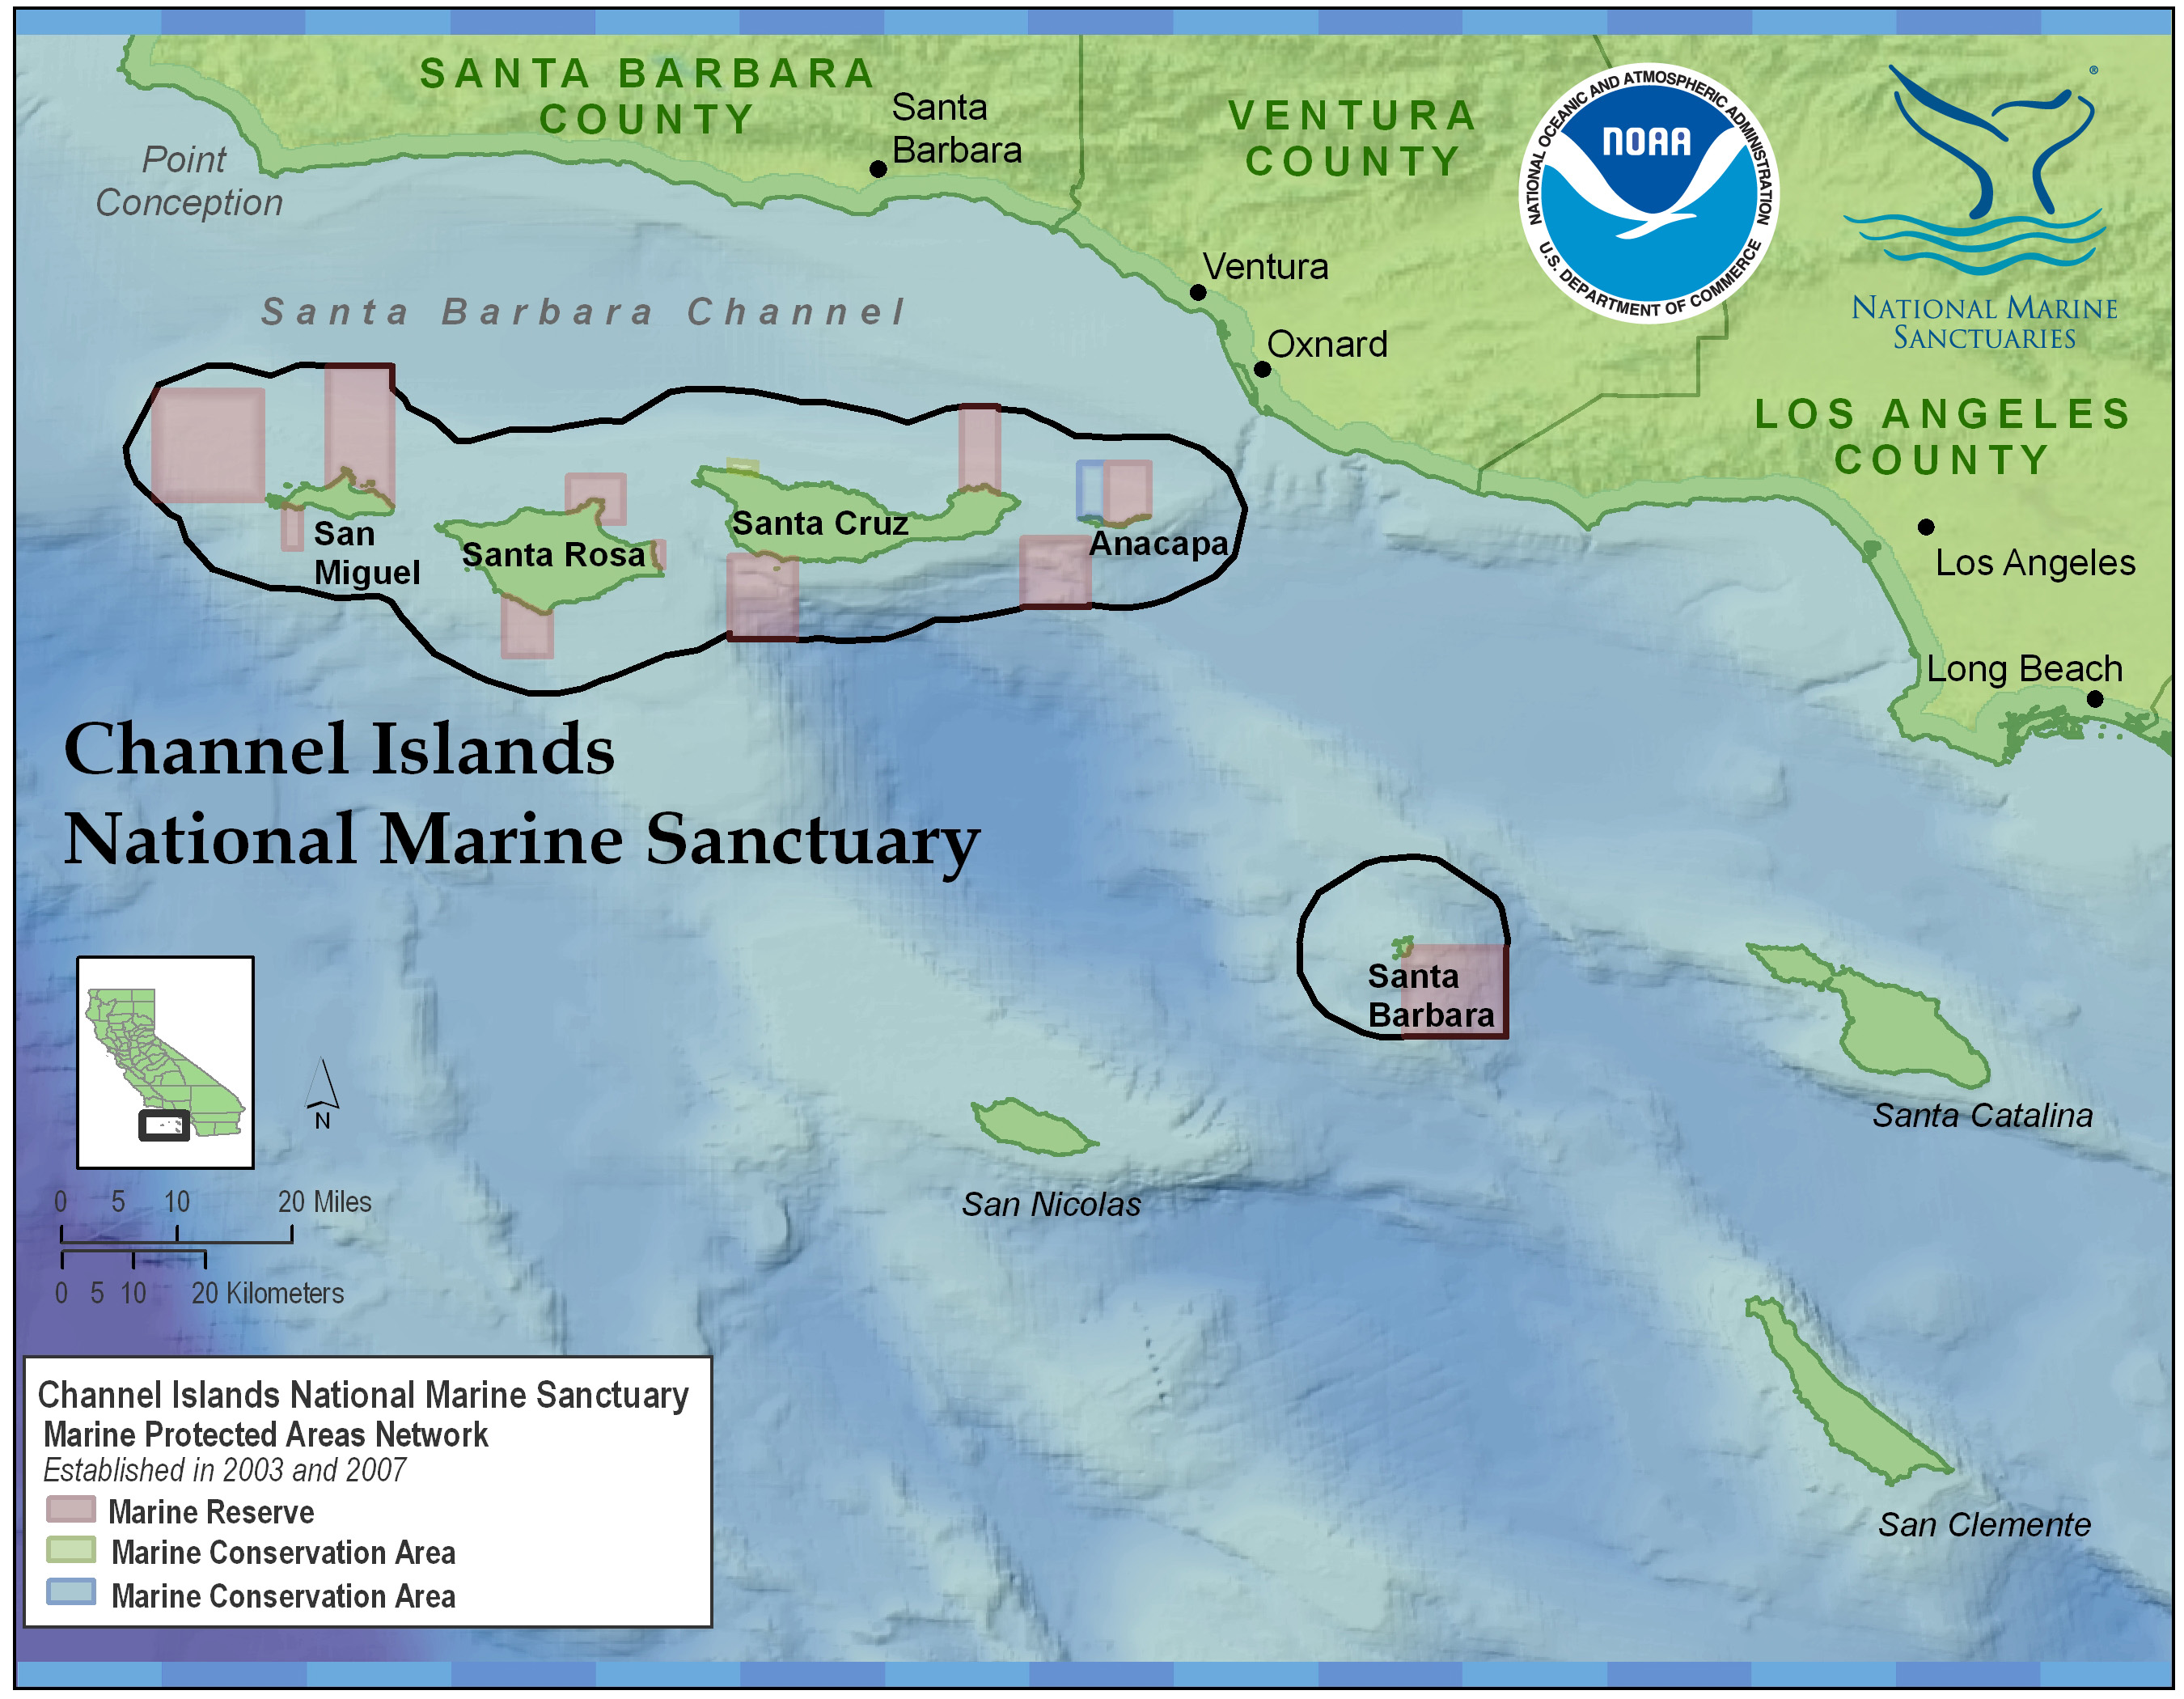 Channel Islands Ca Map Channel Islands Return: Documenting Effectiveness of California's